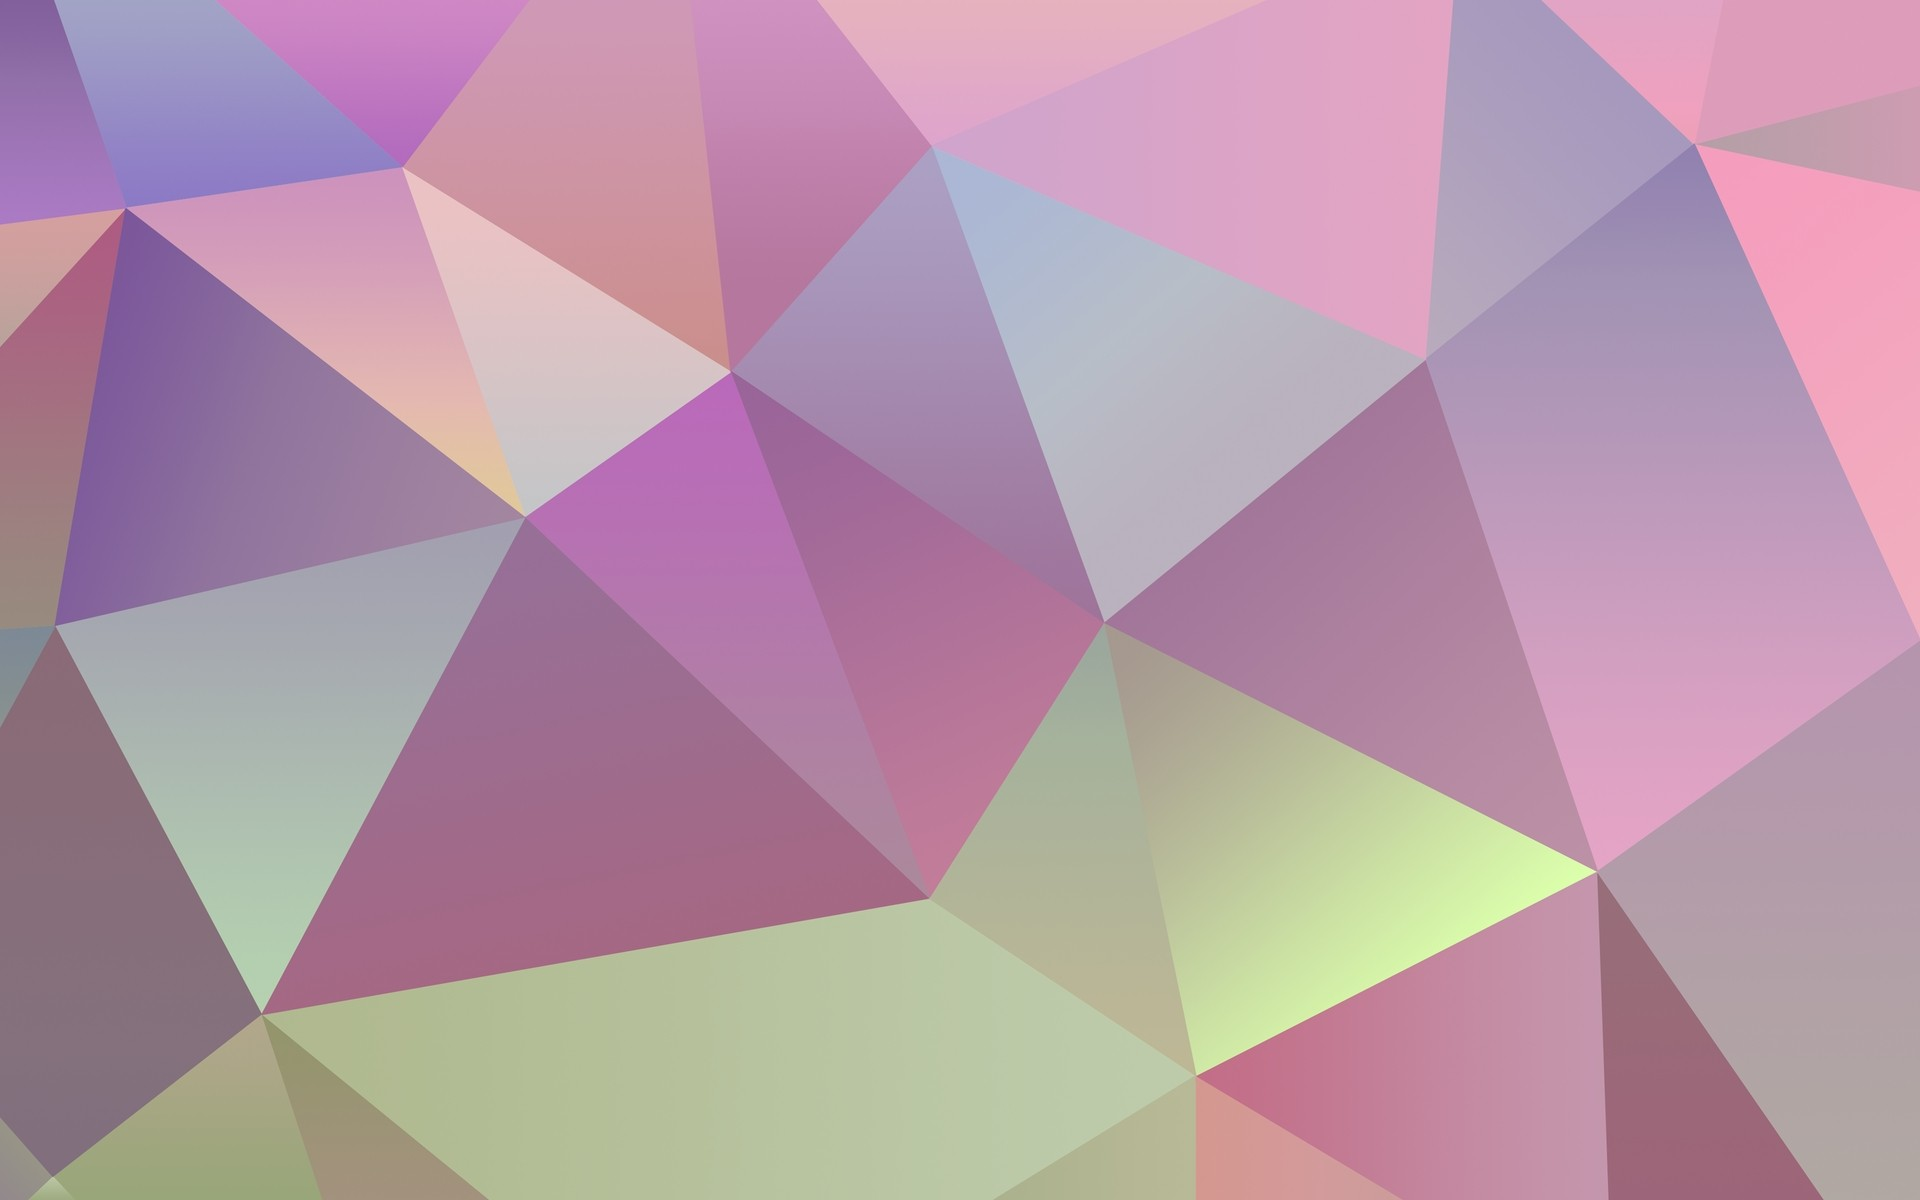 22 Pastel Tumblr Backgrounds Download Free Hd Wallpapers For